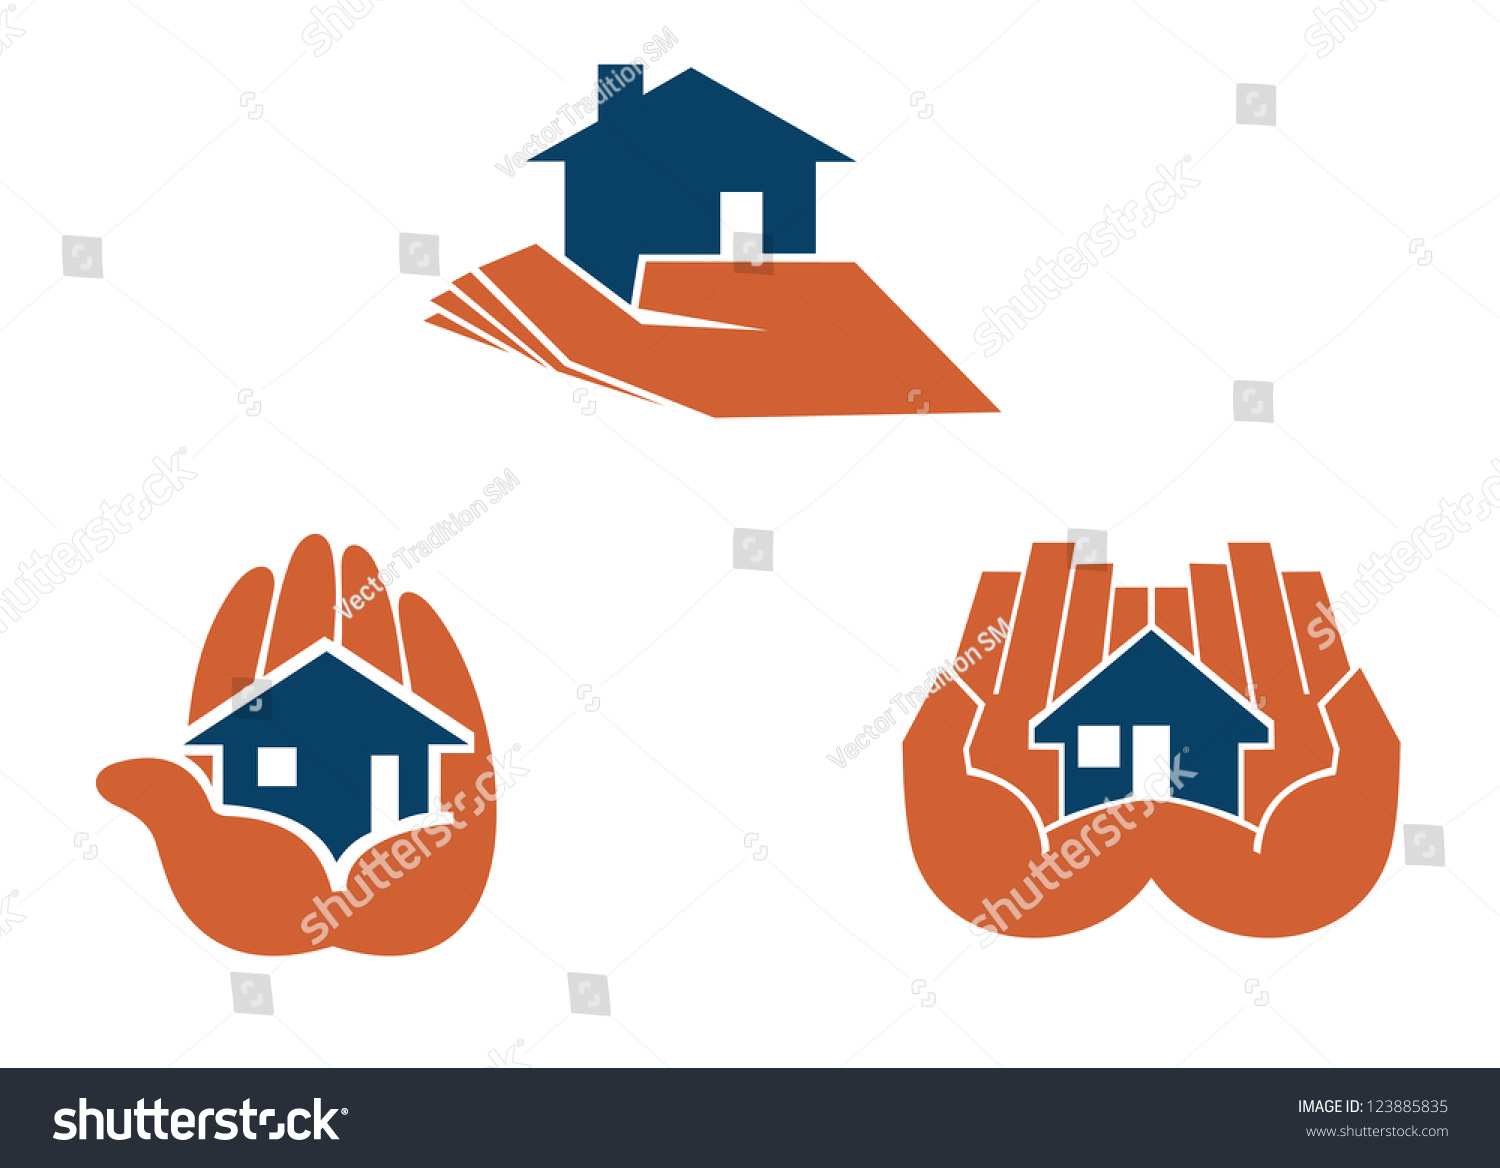 House hands symbols pictograms real estate stock illustration house in hands symbols and pictograms for real estate business design such as idea of biocorpaavc Image collections